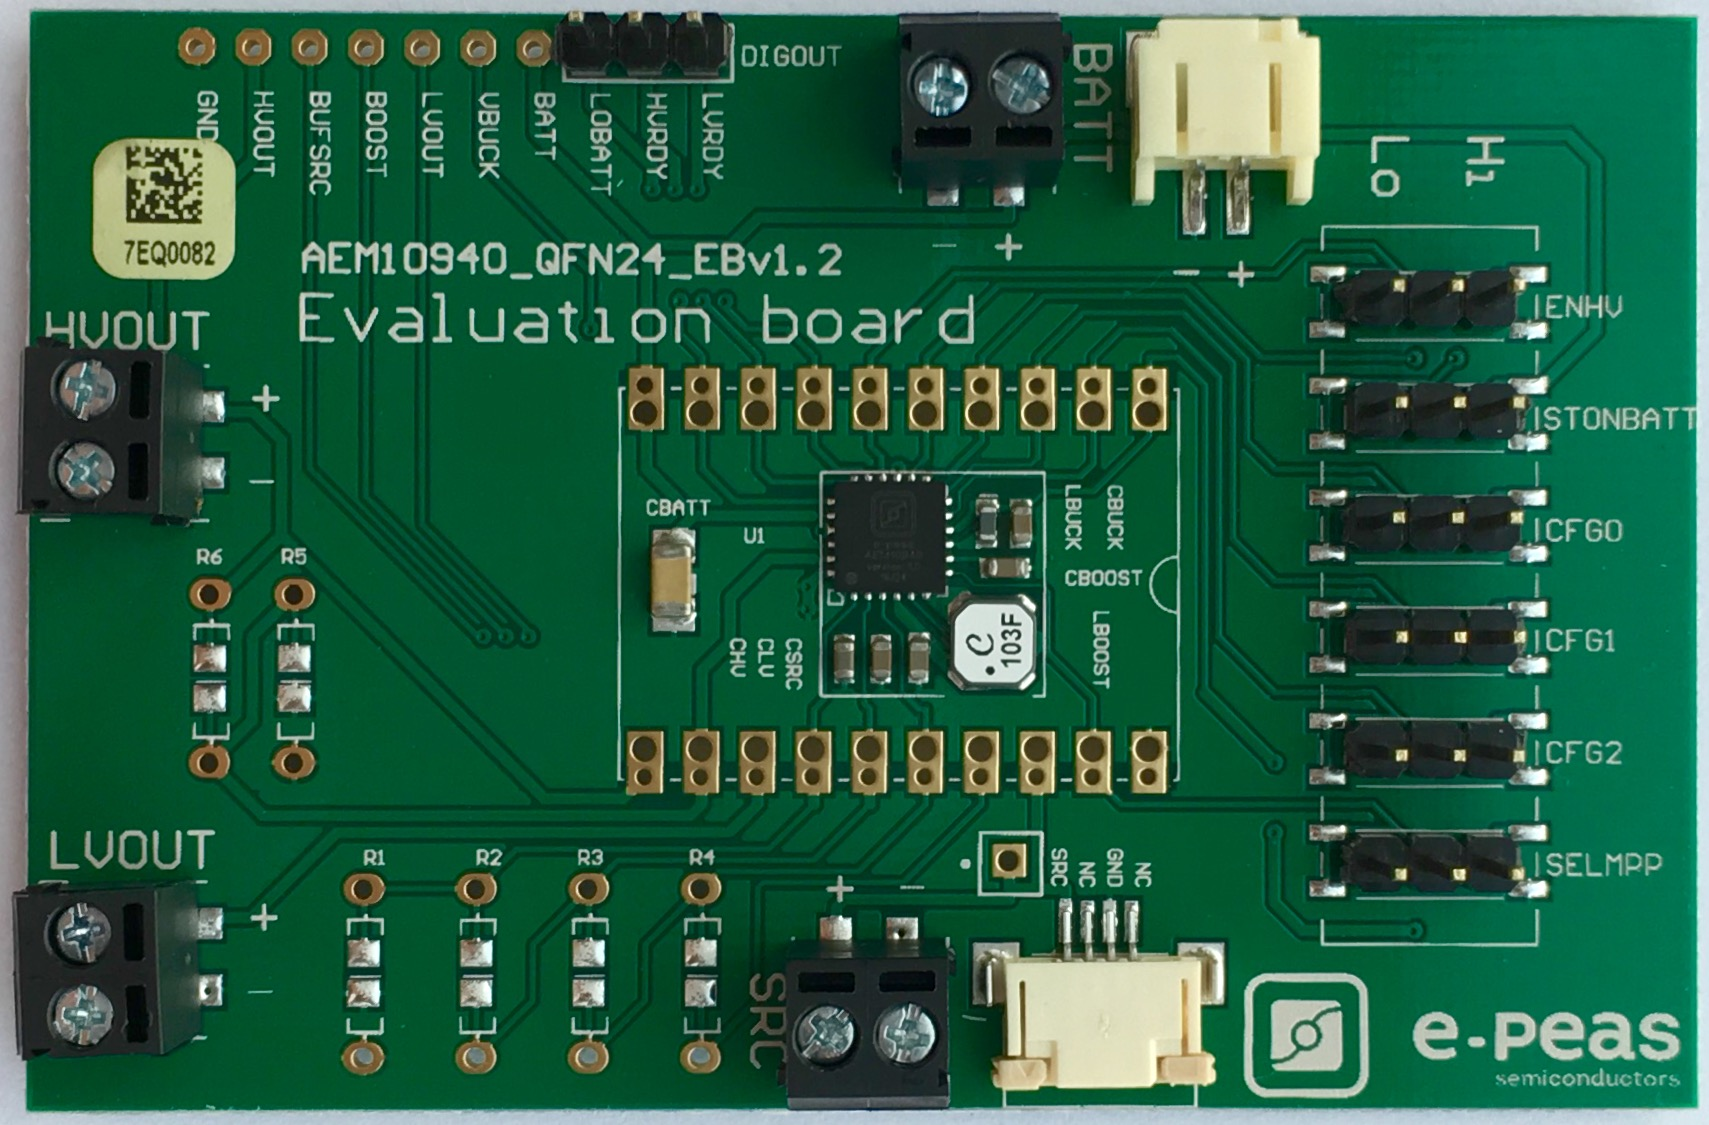 Board AEM10940, A High Efficient Power Management IC From e-peas